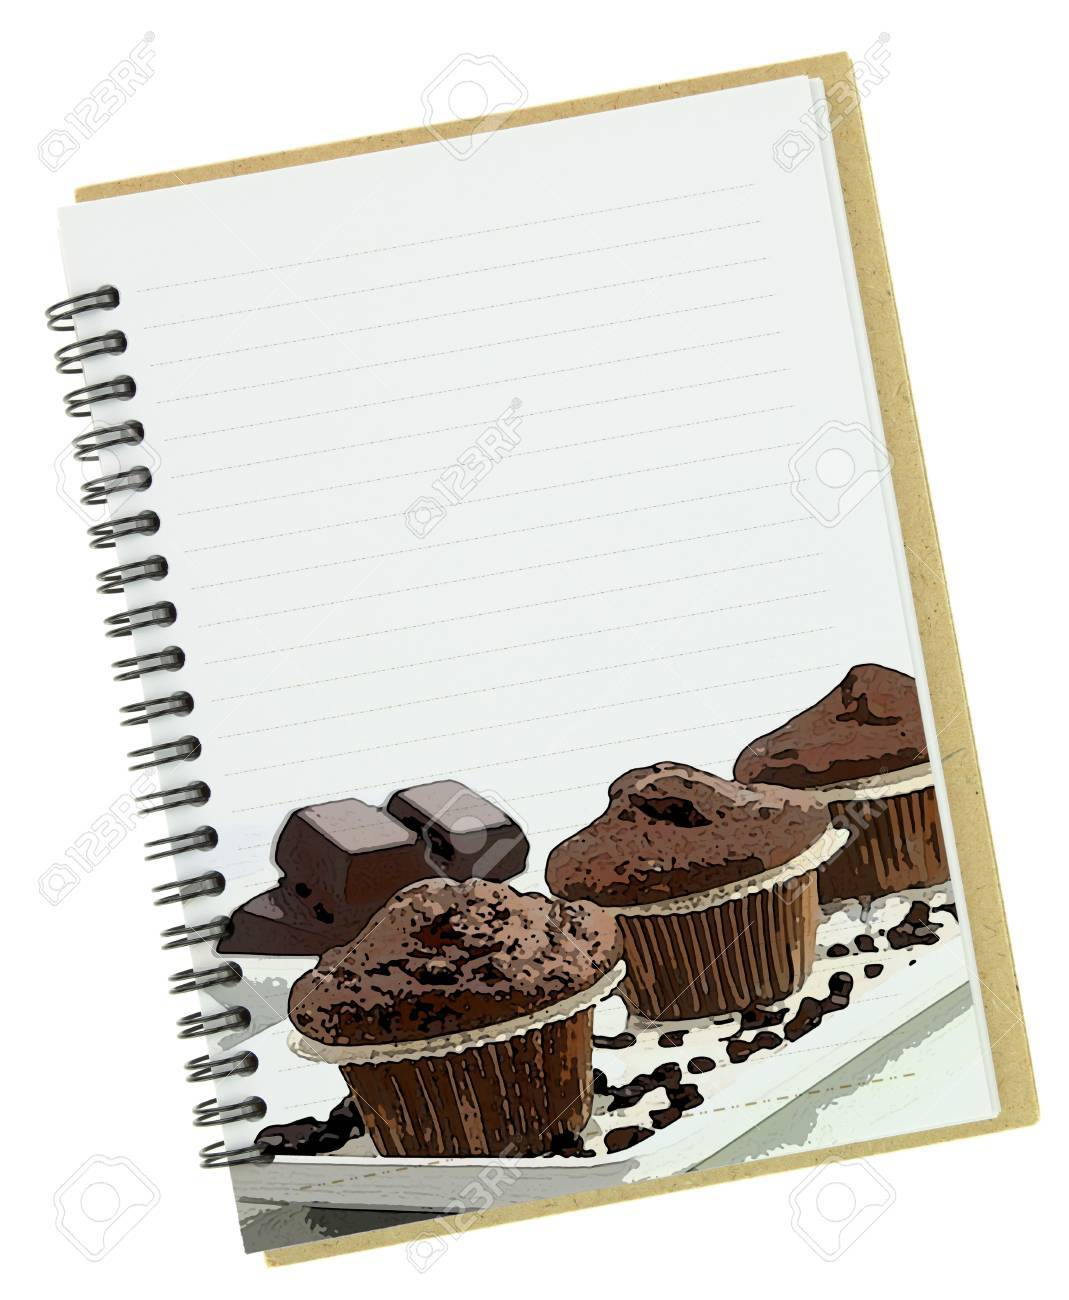 Recipe book, muffins painting on blank notebook page Stock Photo - 18422373